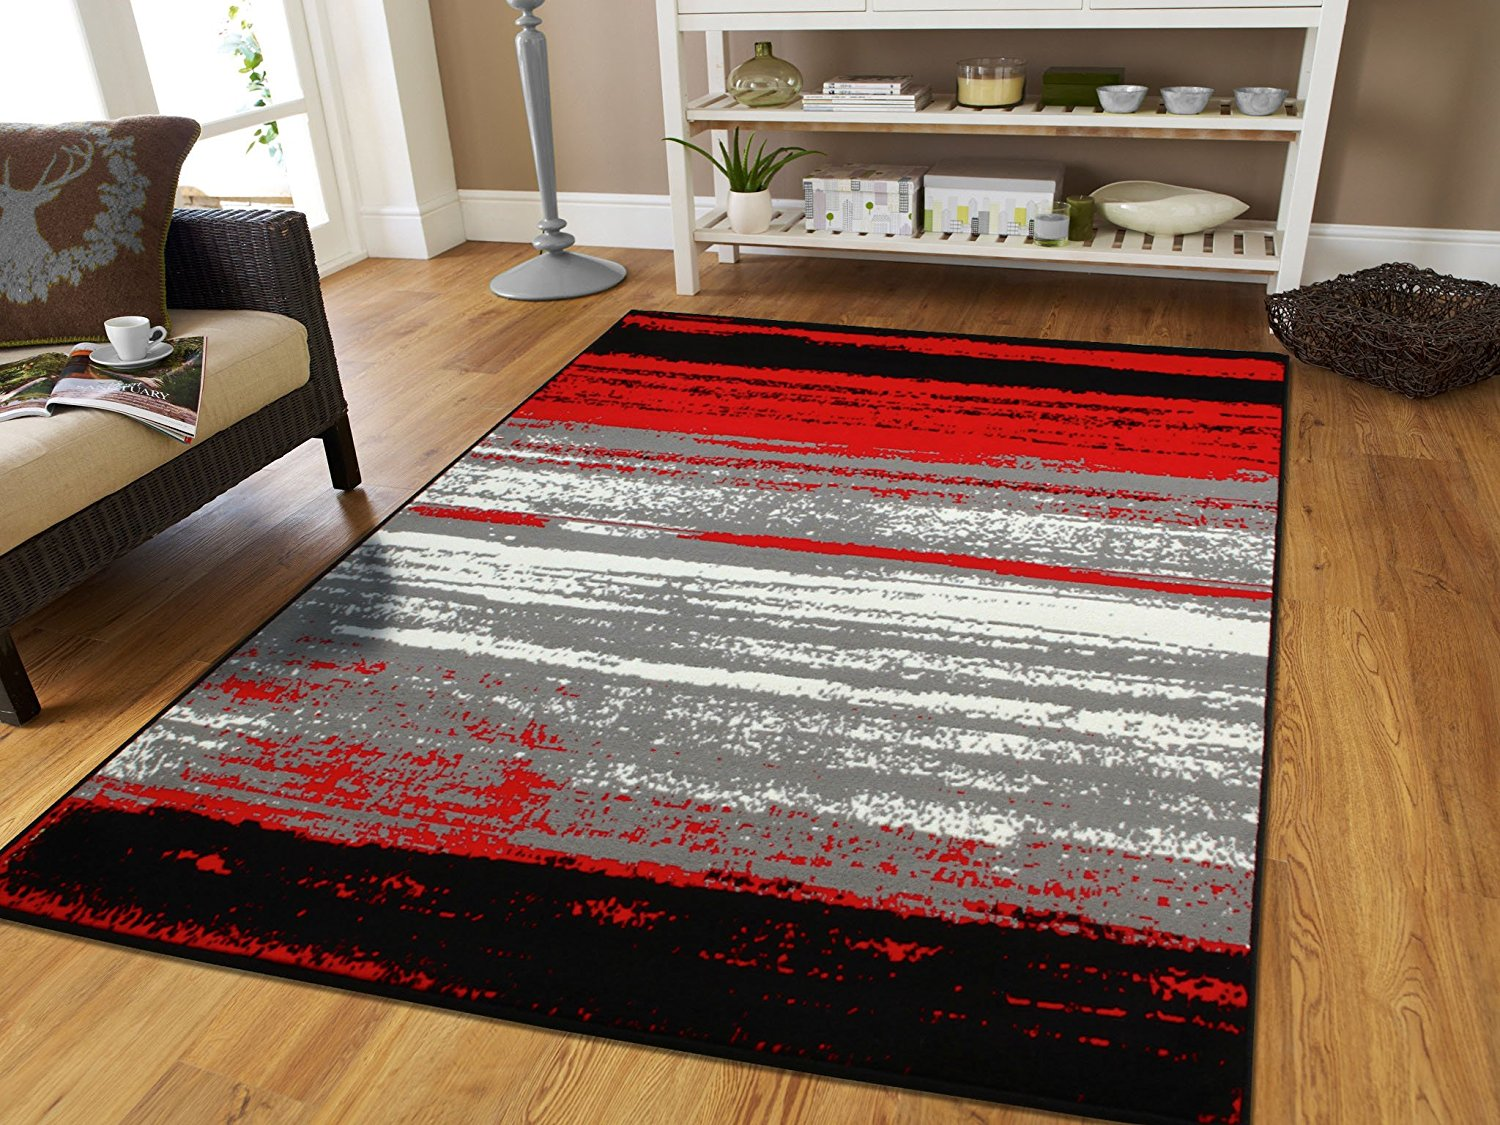 Large 8x11 Contemporary Area Rugs Red Black Gray 8x10 Area Rugs Under $100  Clearance